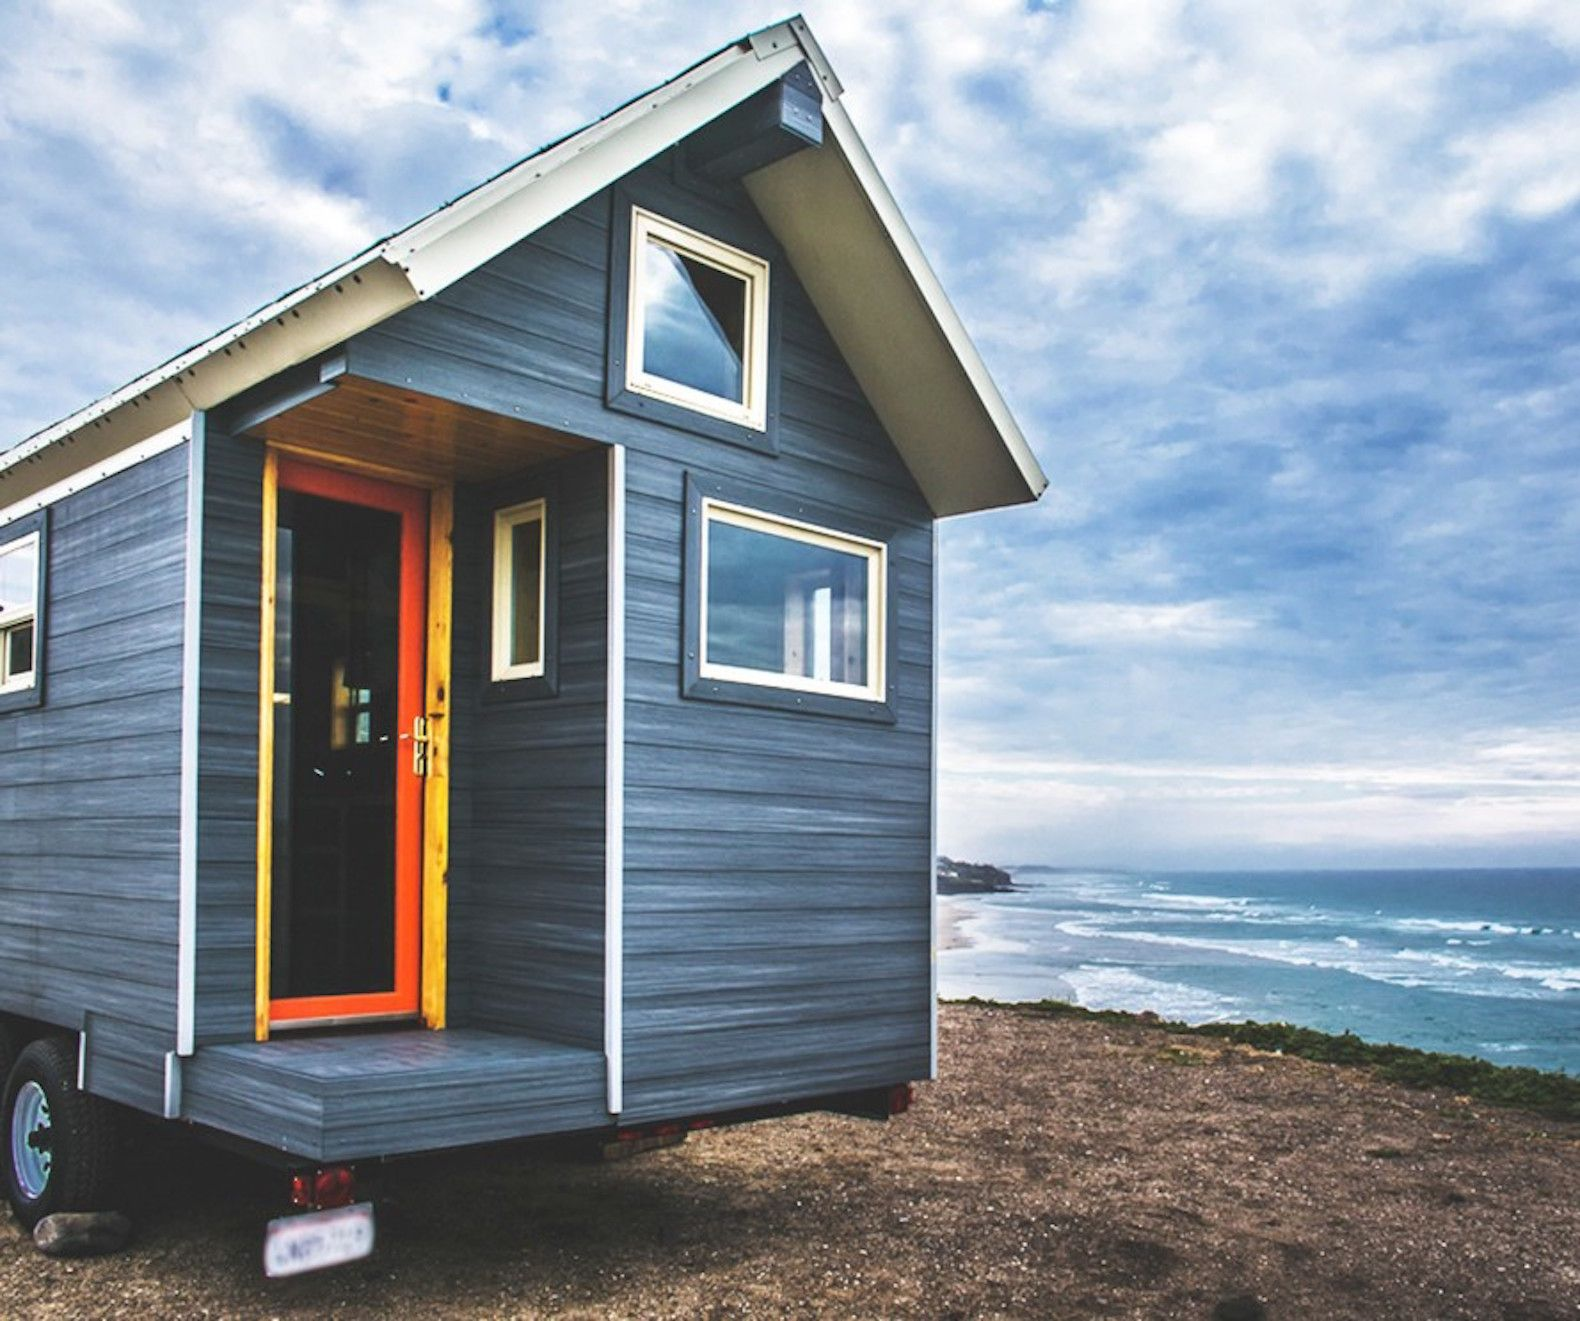 6 Tiny Homes Under 50 000 You Can Buy Right Now Cheap Tiny